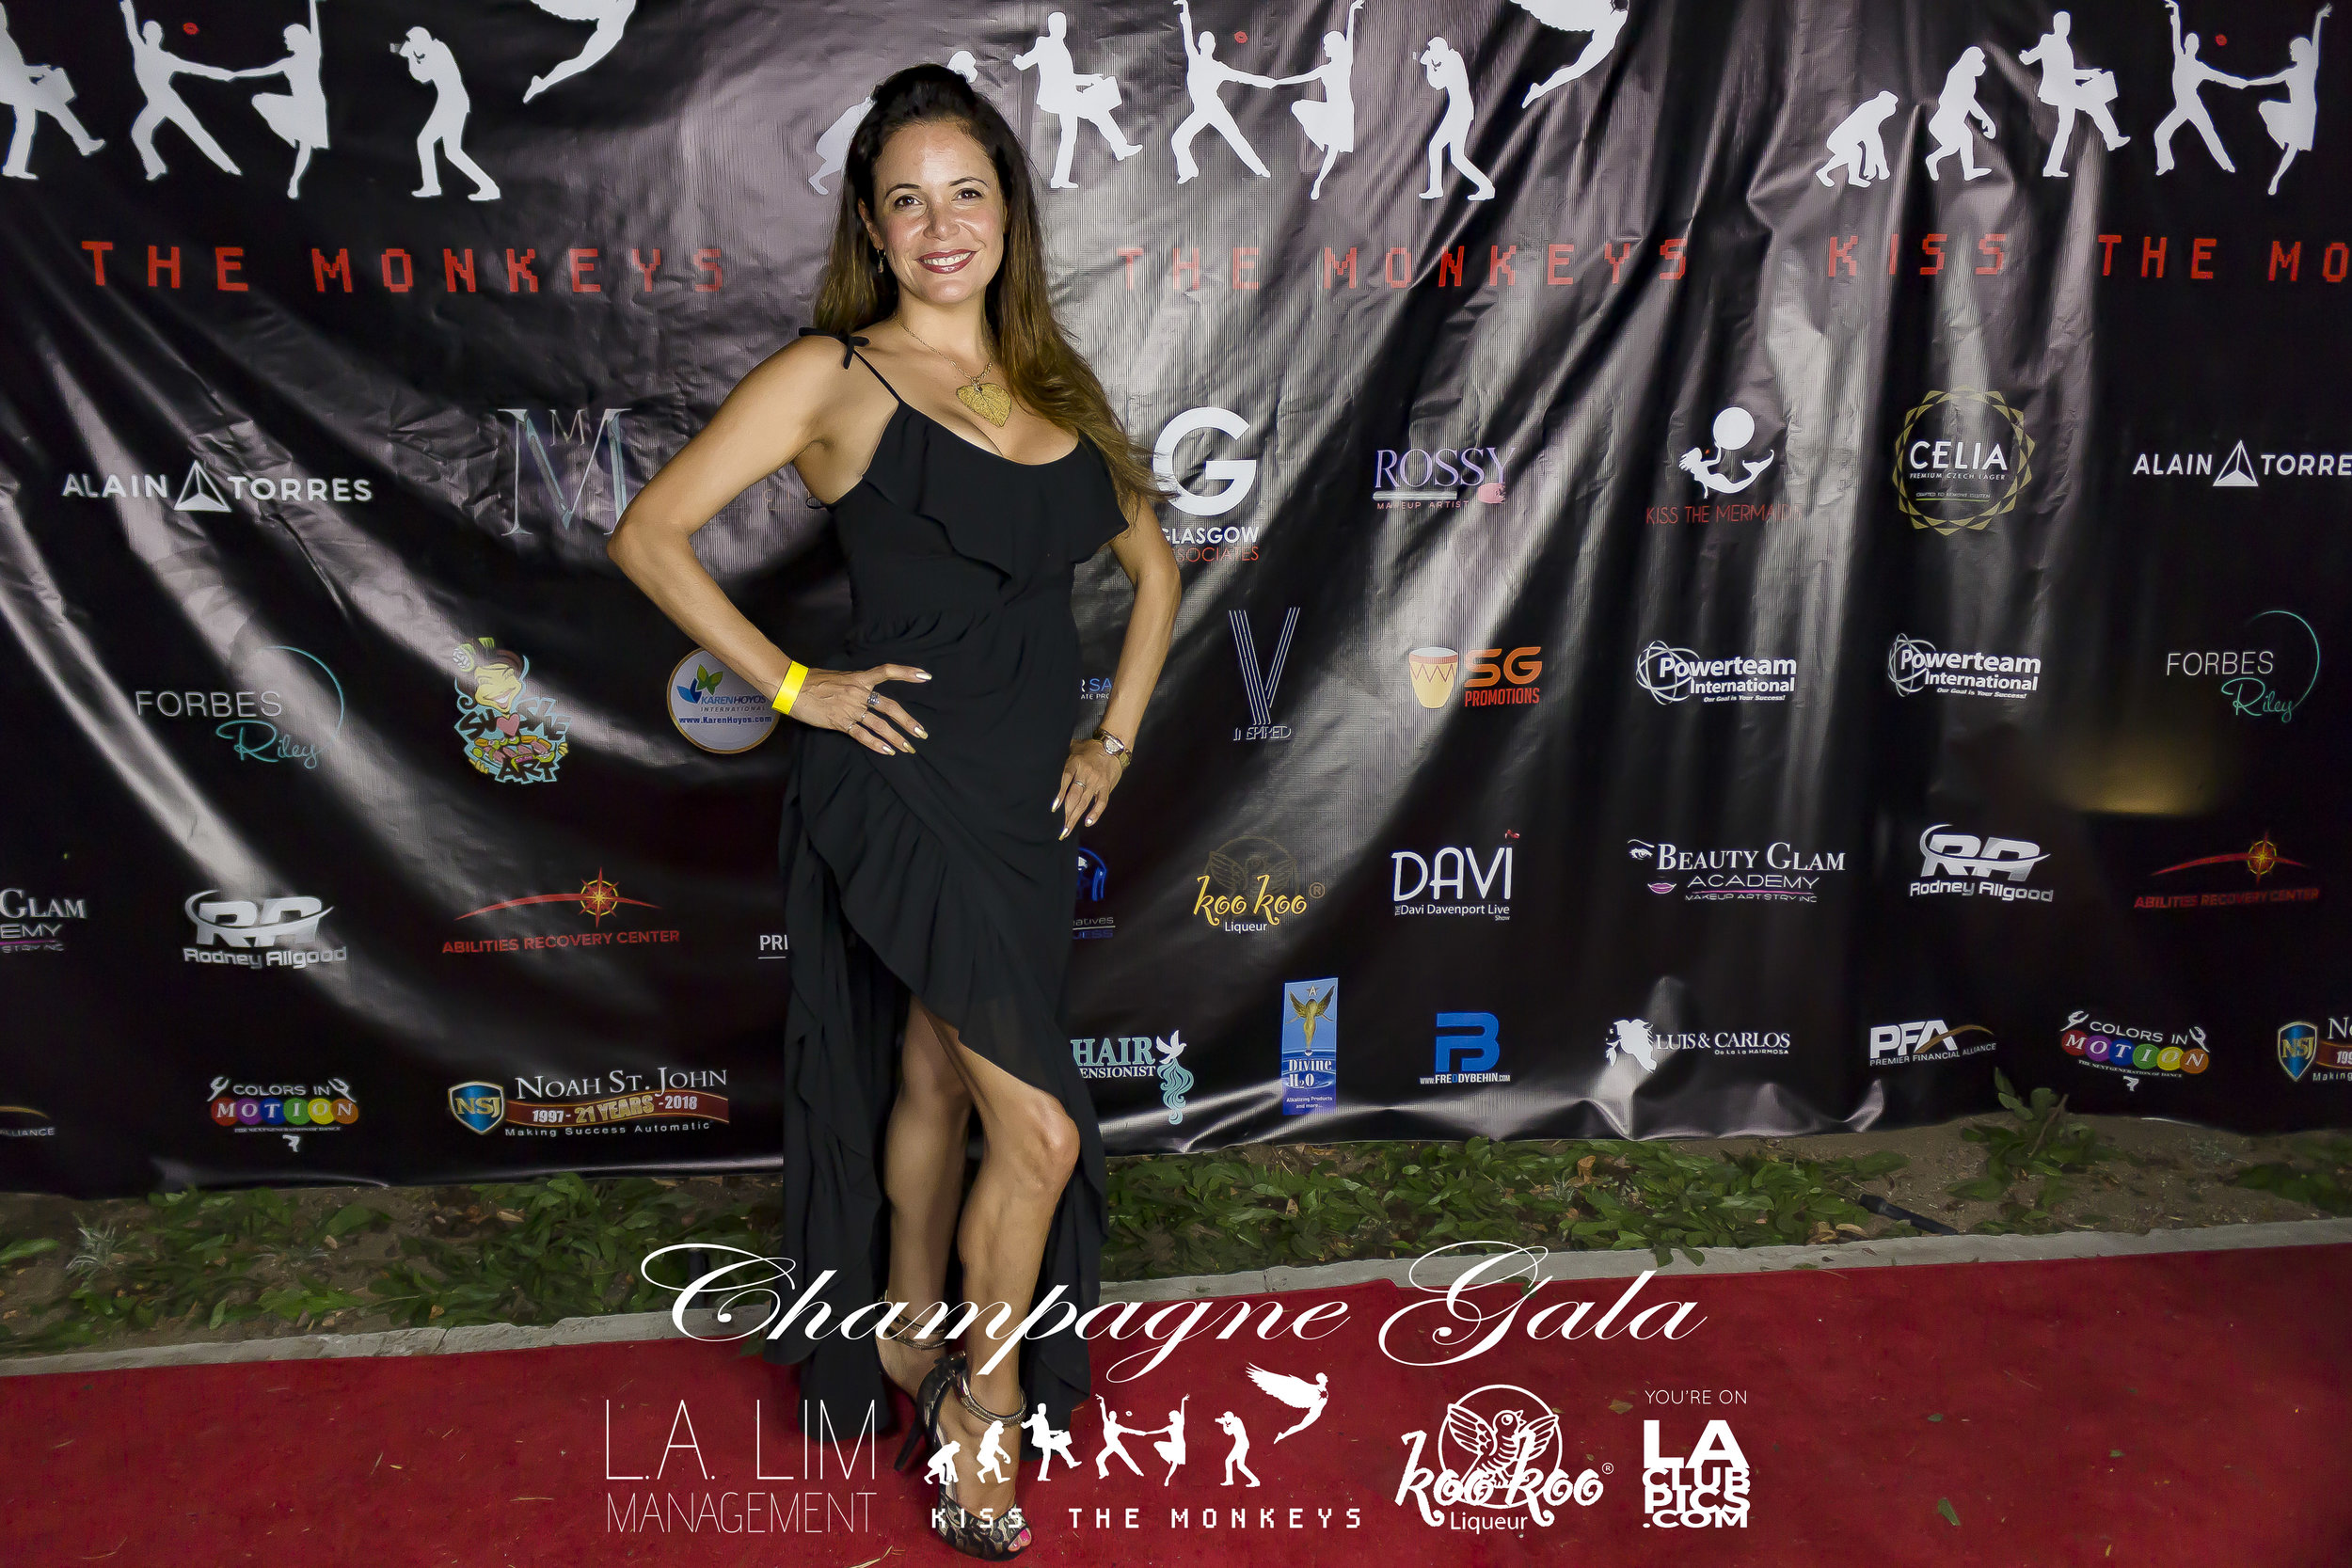 Kiss The Monkeys - Champagne Gala - 07-21-18_16.jpg